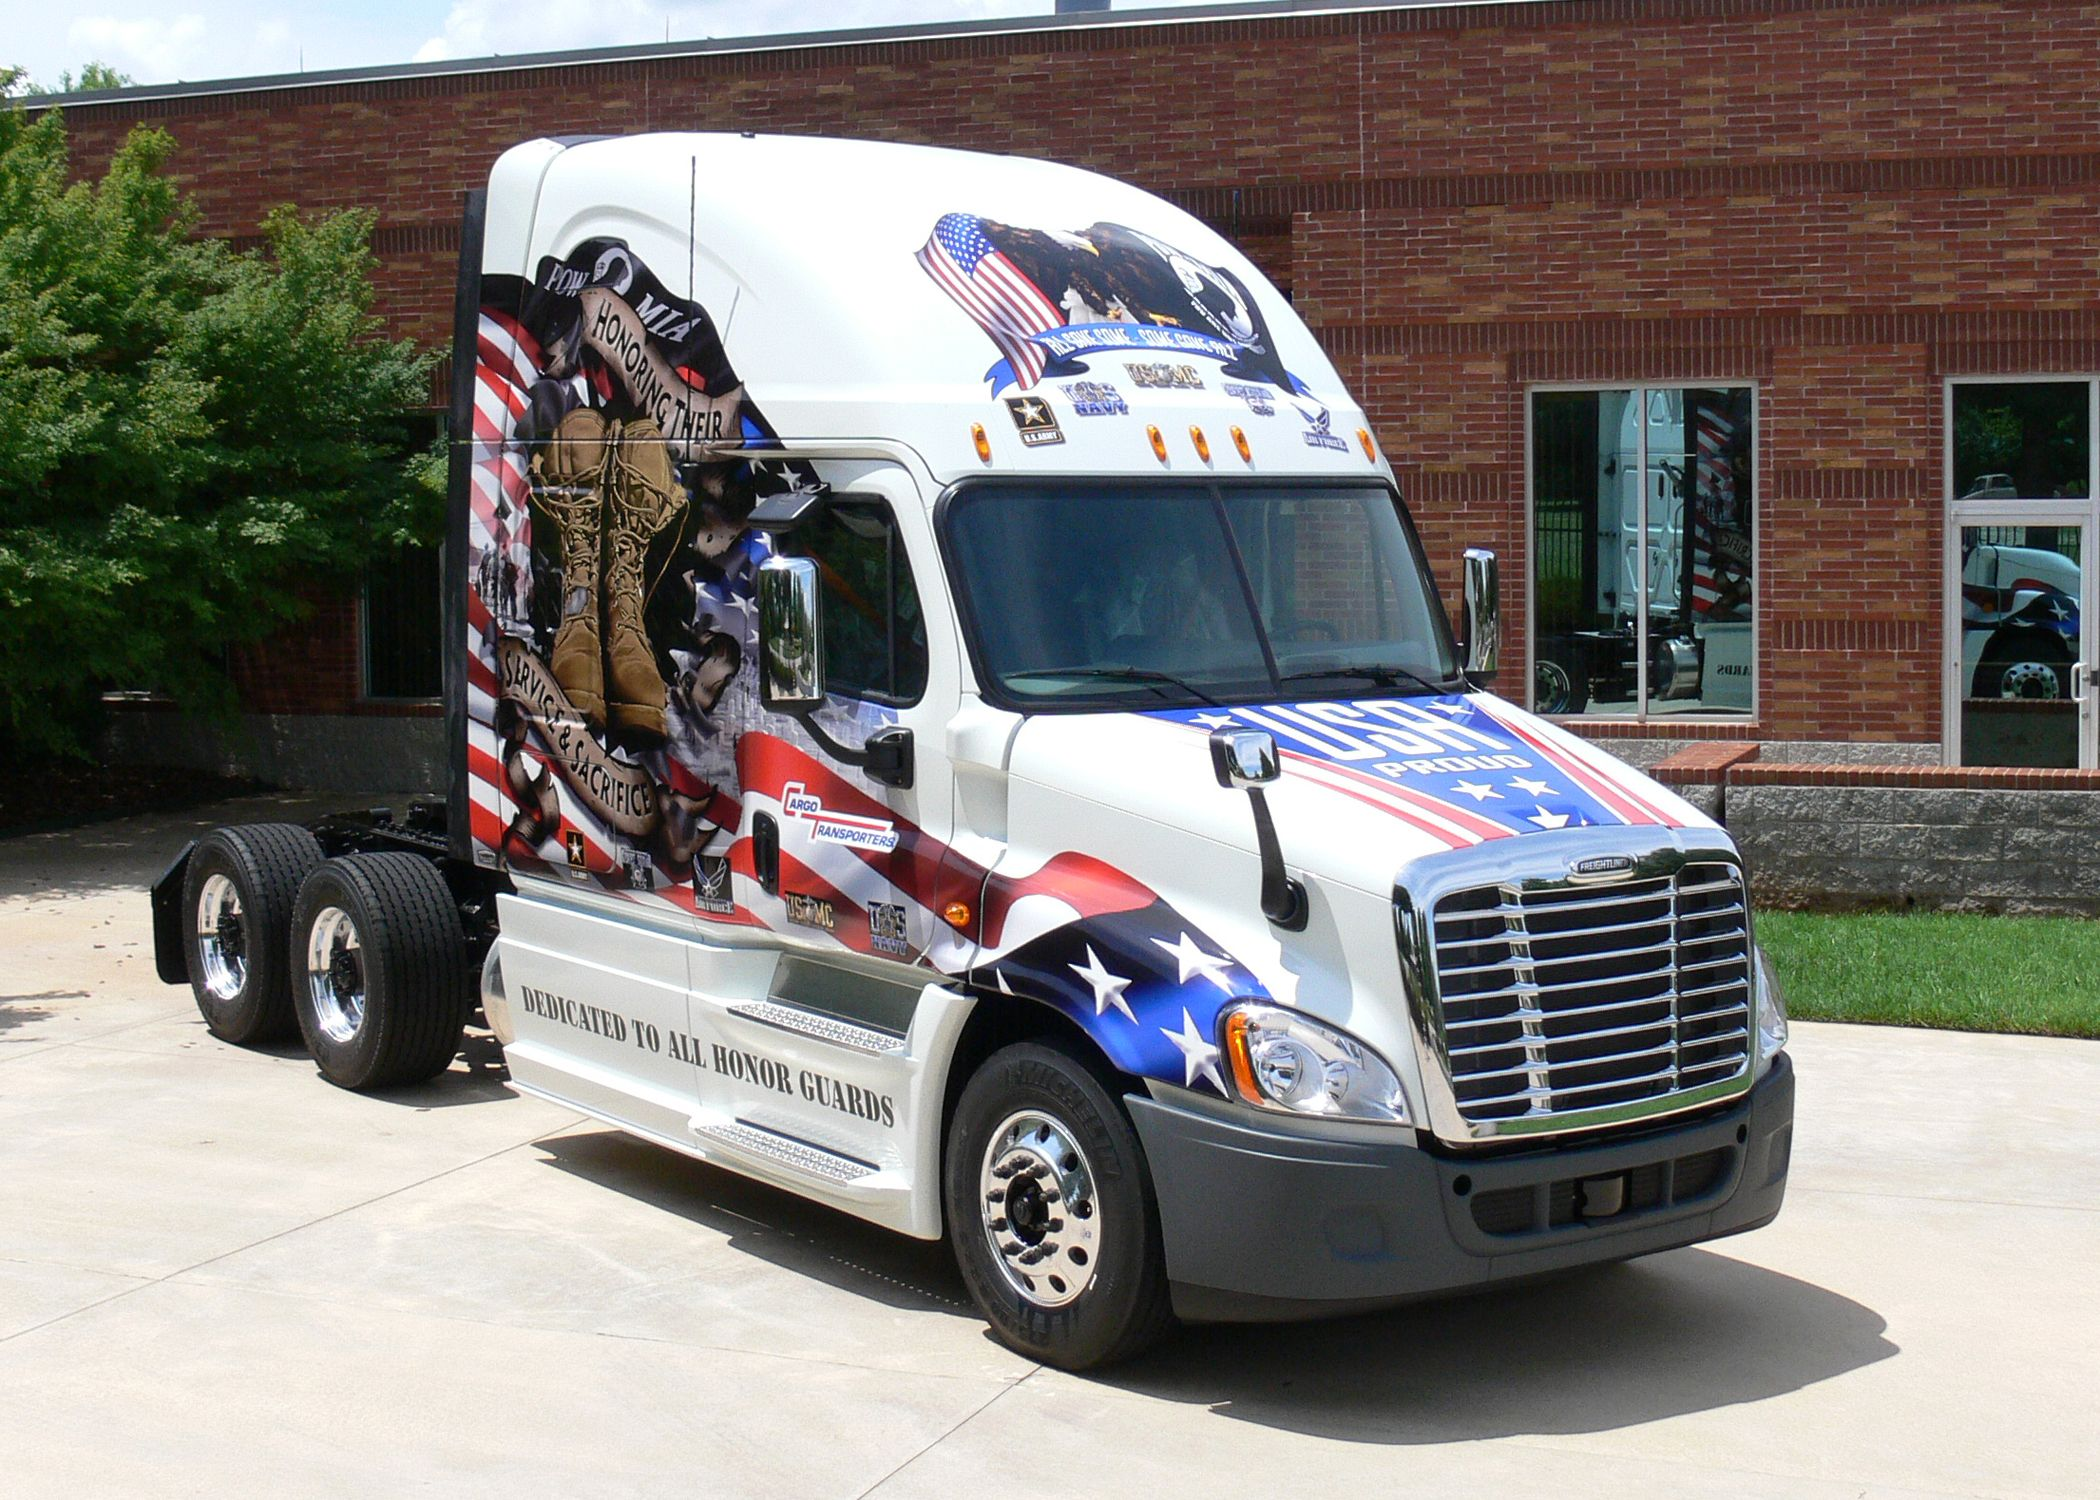 Honor guards truck